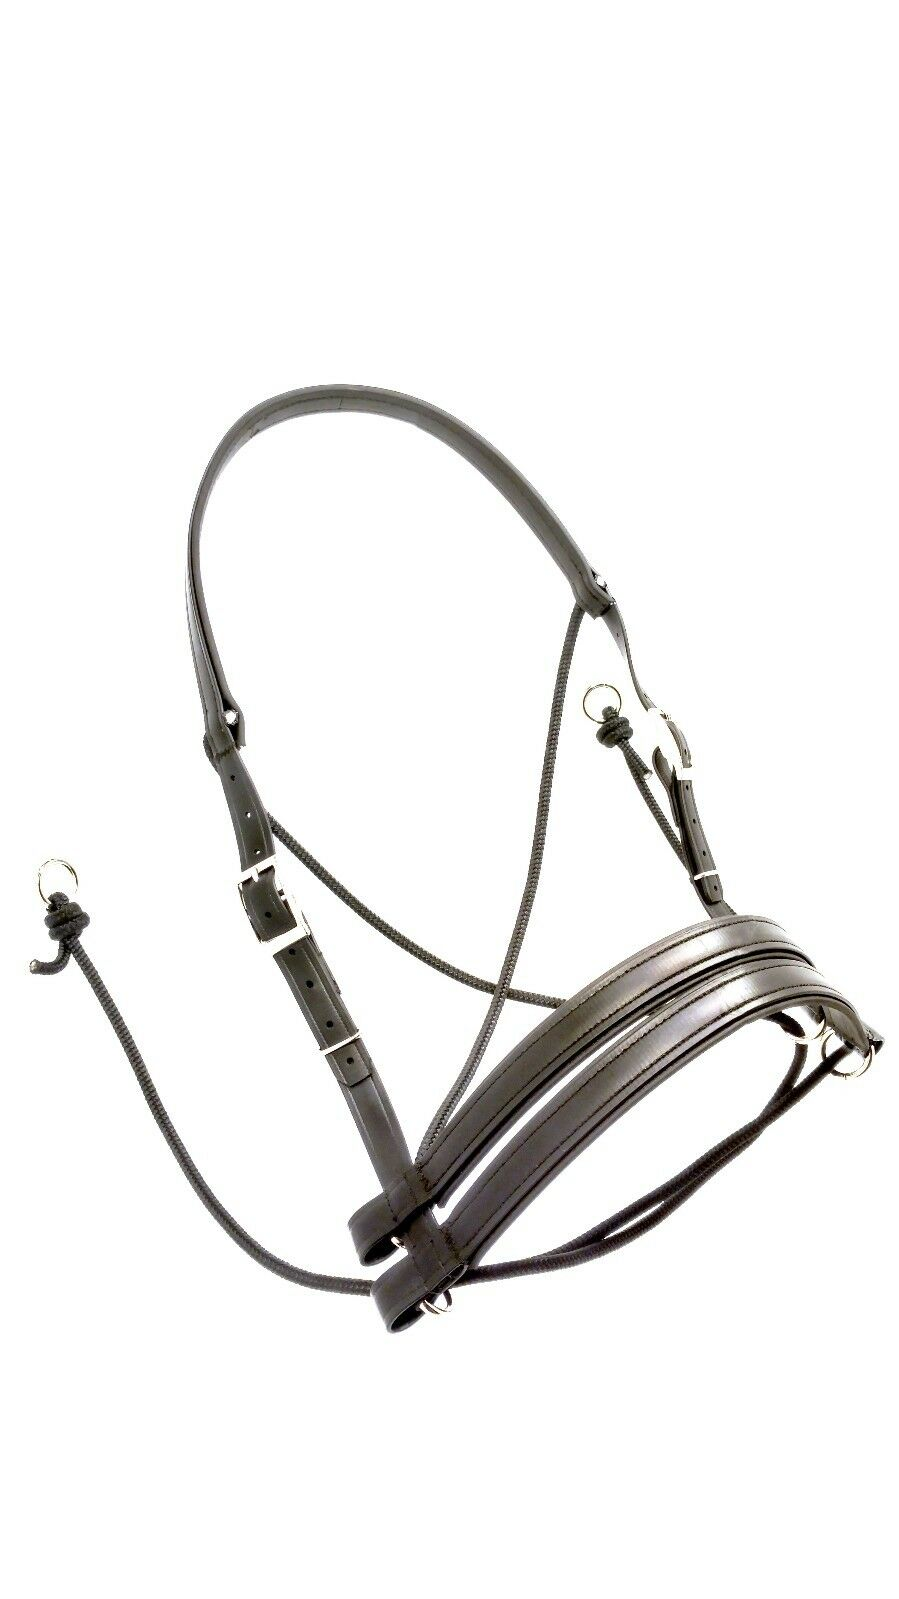 Ultimate Bitless Bridle Classic Biothane, US Patent 8,789,349 Freedom Connection